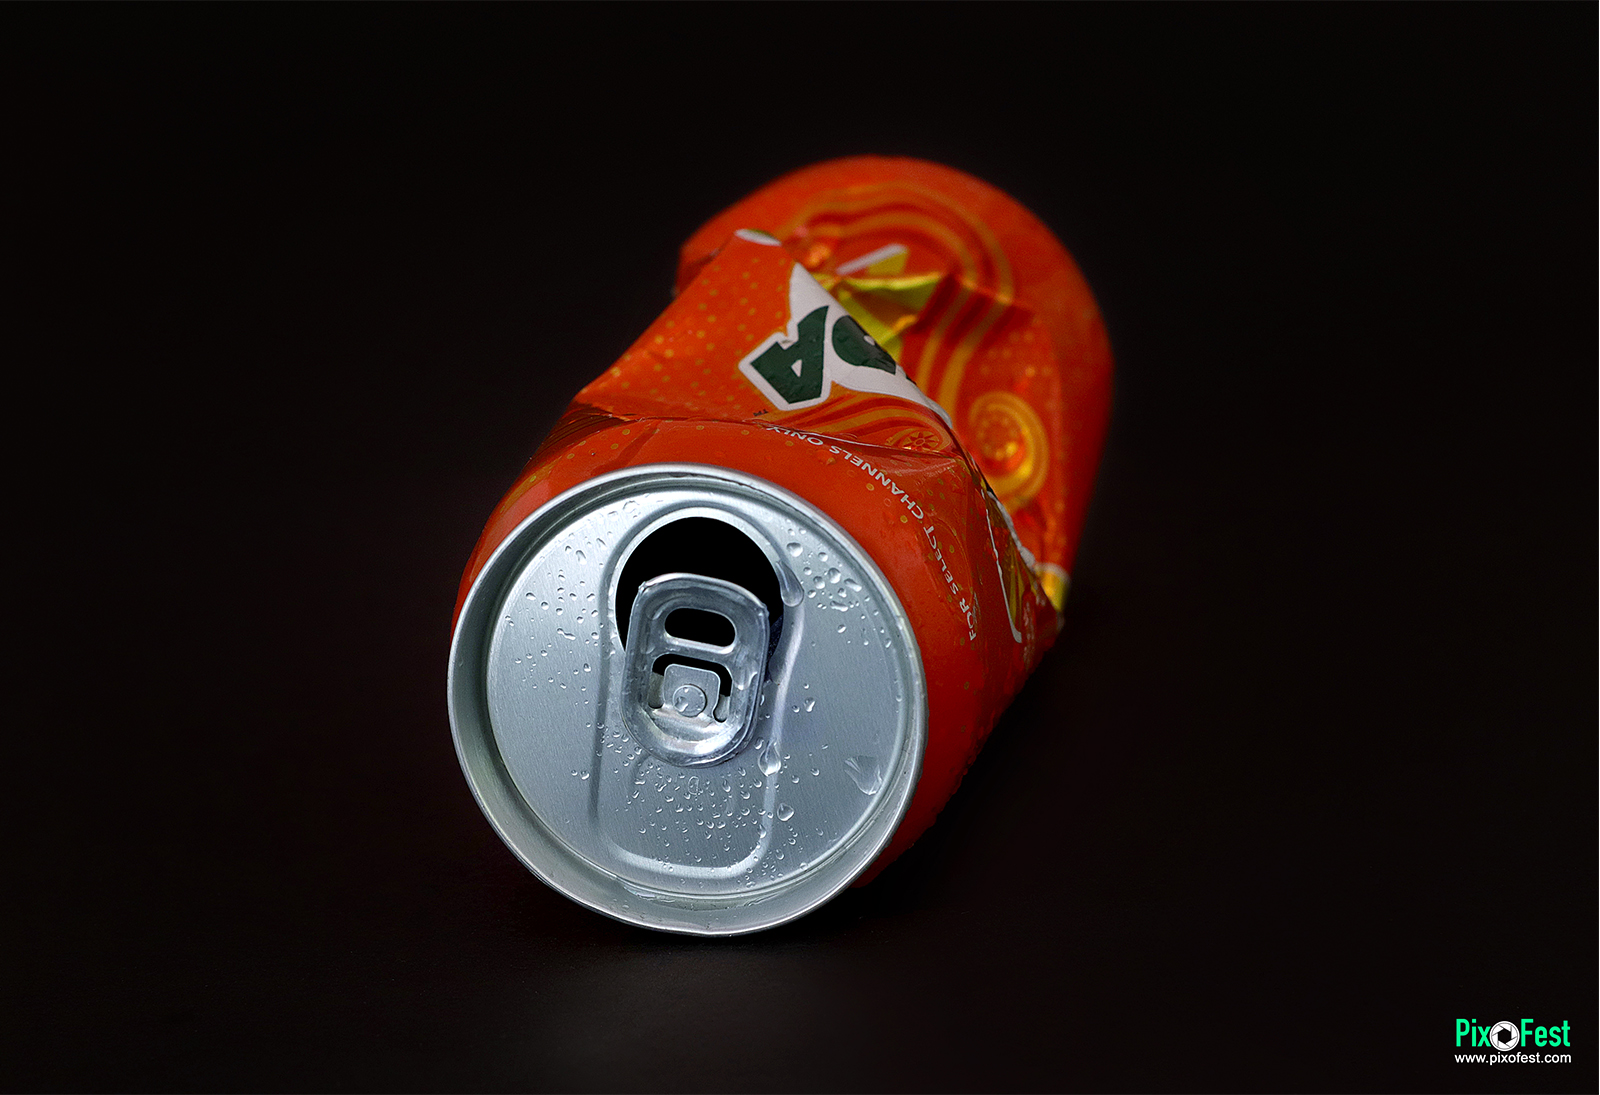 Mirinda_Soda Can, Soda can, Mirinda,Mirinda can, can,Metal can, col can,cold drinks,thanda thanda cool cool